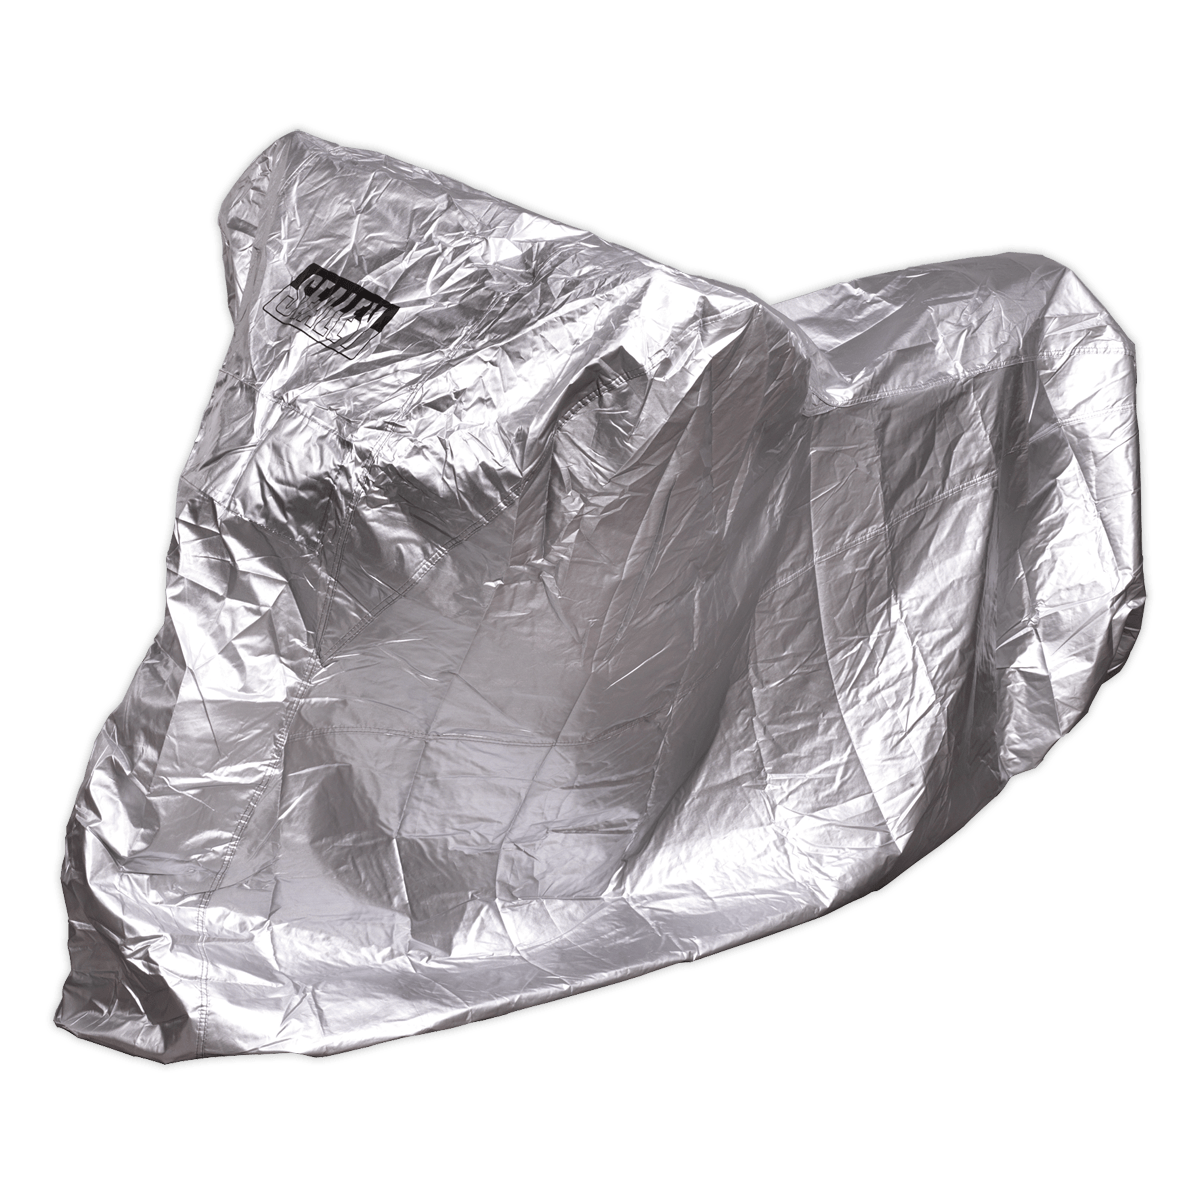 Sealey Motorcycle Cover Large 2460 x 1050 x 1370mm MCL